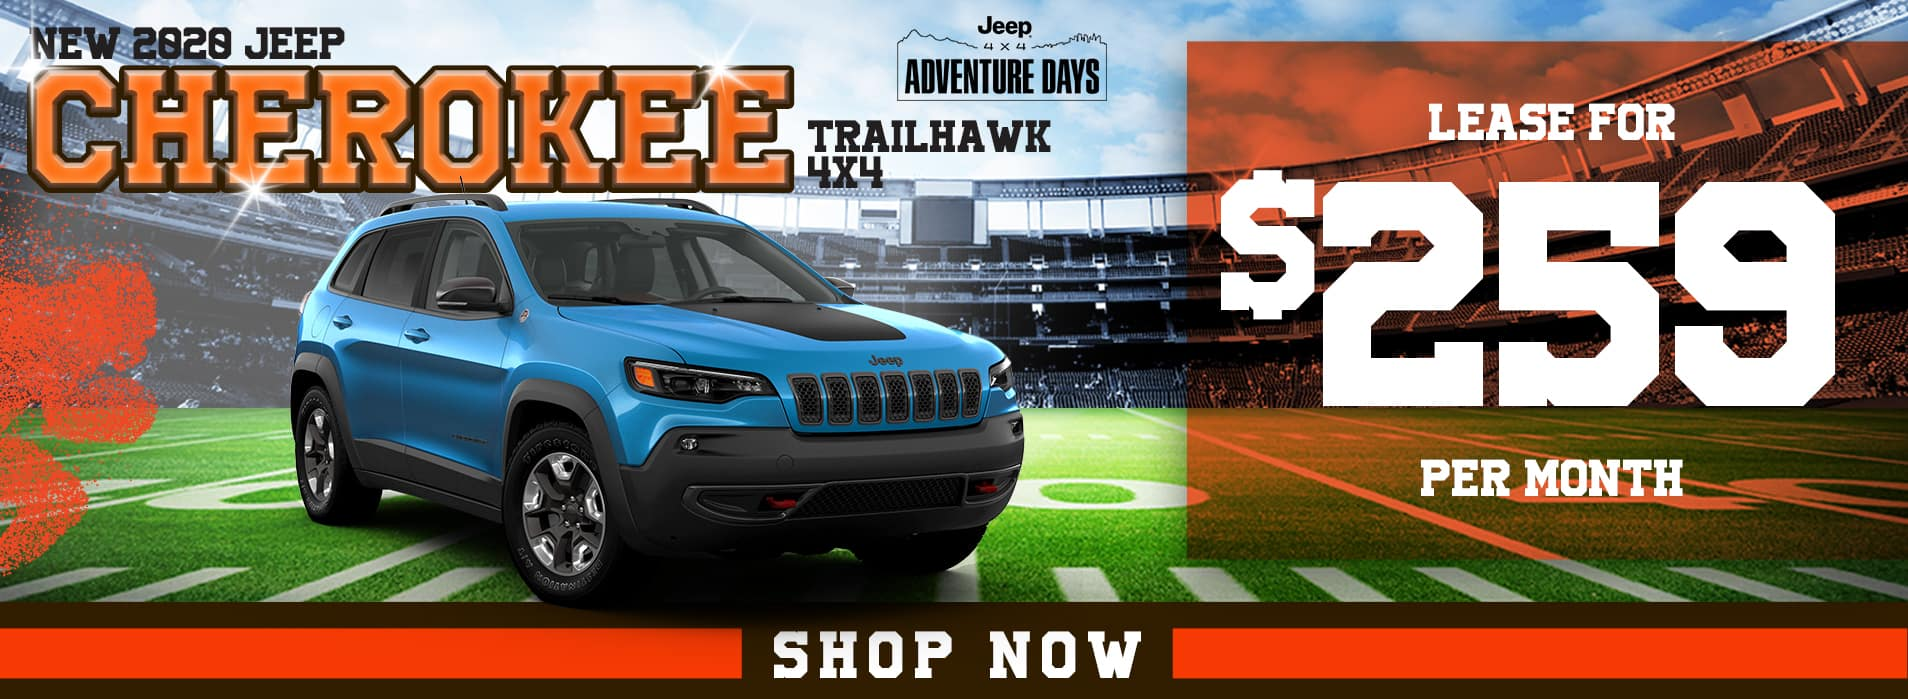 2020 Jeep Cherokee Trailhawk 4x4 | Lease for $259 Per Month